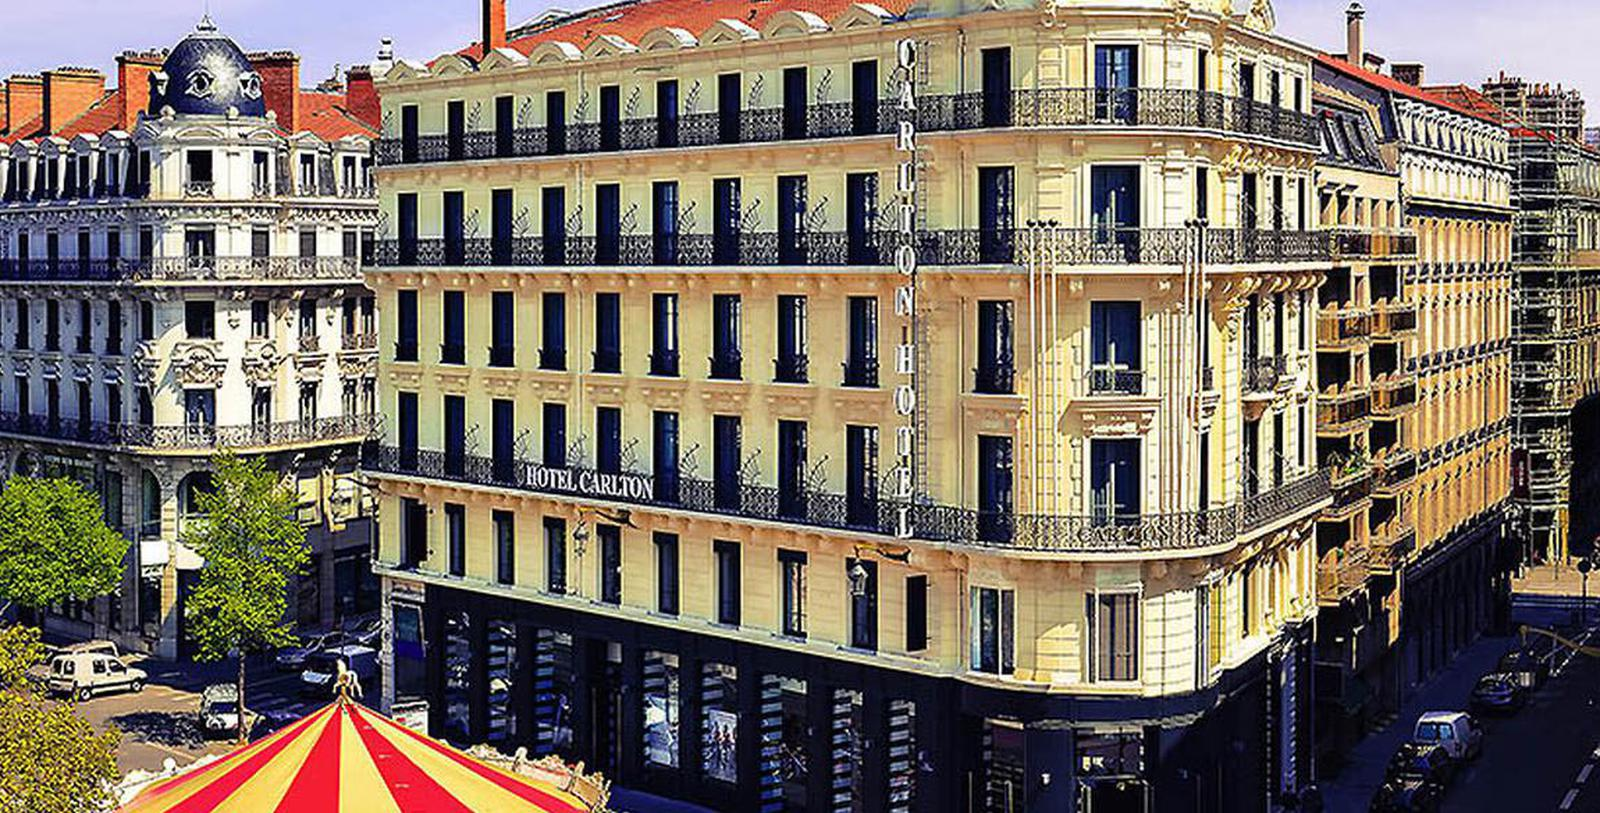 Image of Hotel Exterior Hôtel Carlton Lyon - MGallery by Sofitel, 1894, Member of Historic Hotels Worldwide, in Lyon, France, Special Offers, Discounted Rates, Families, Romantic Escape, Honeymoons, Anniversaries, Reunions